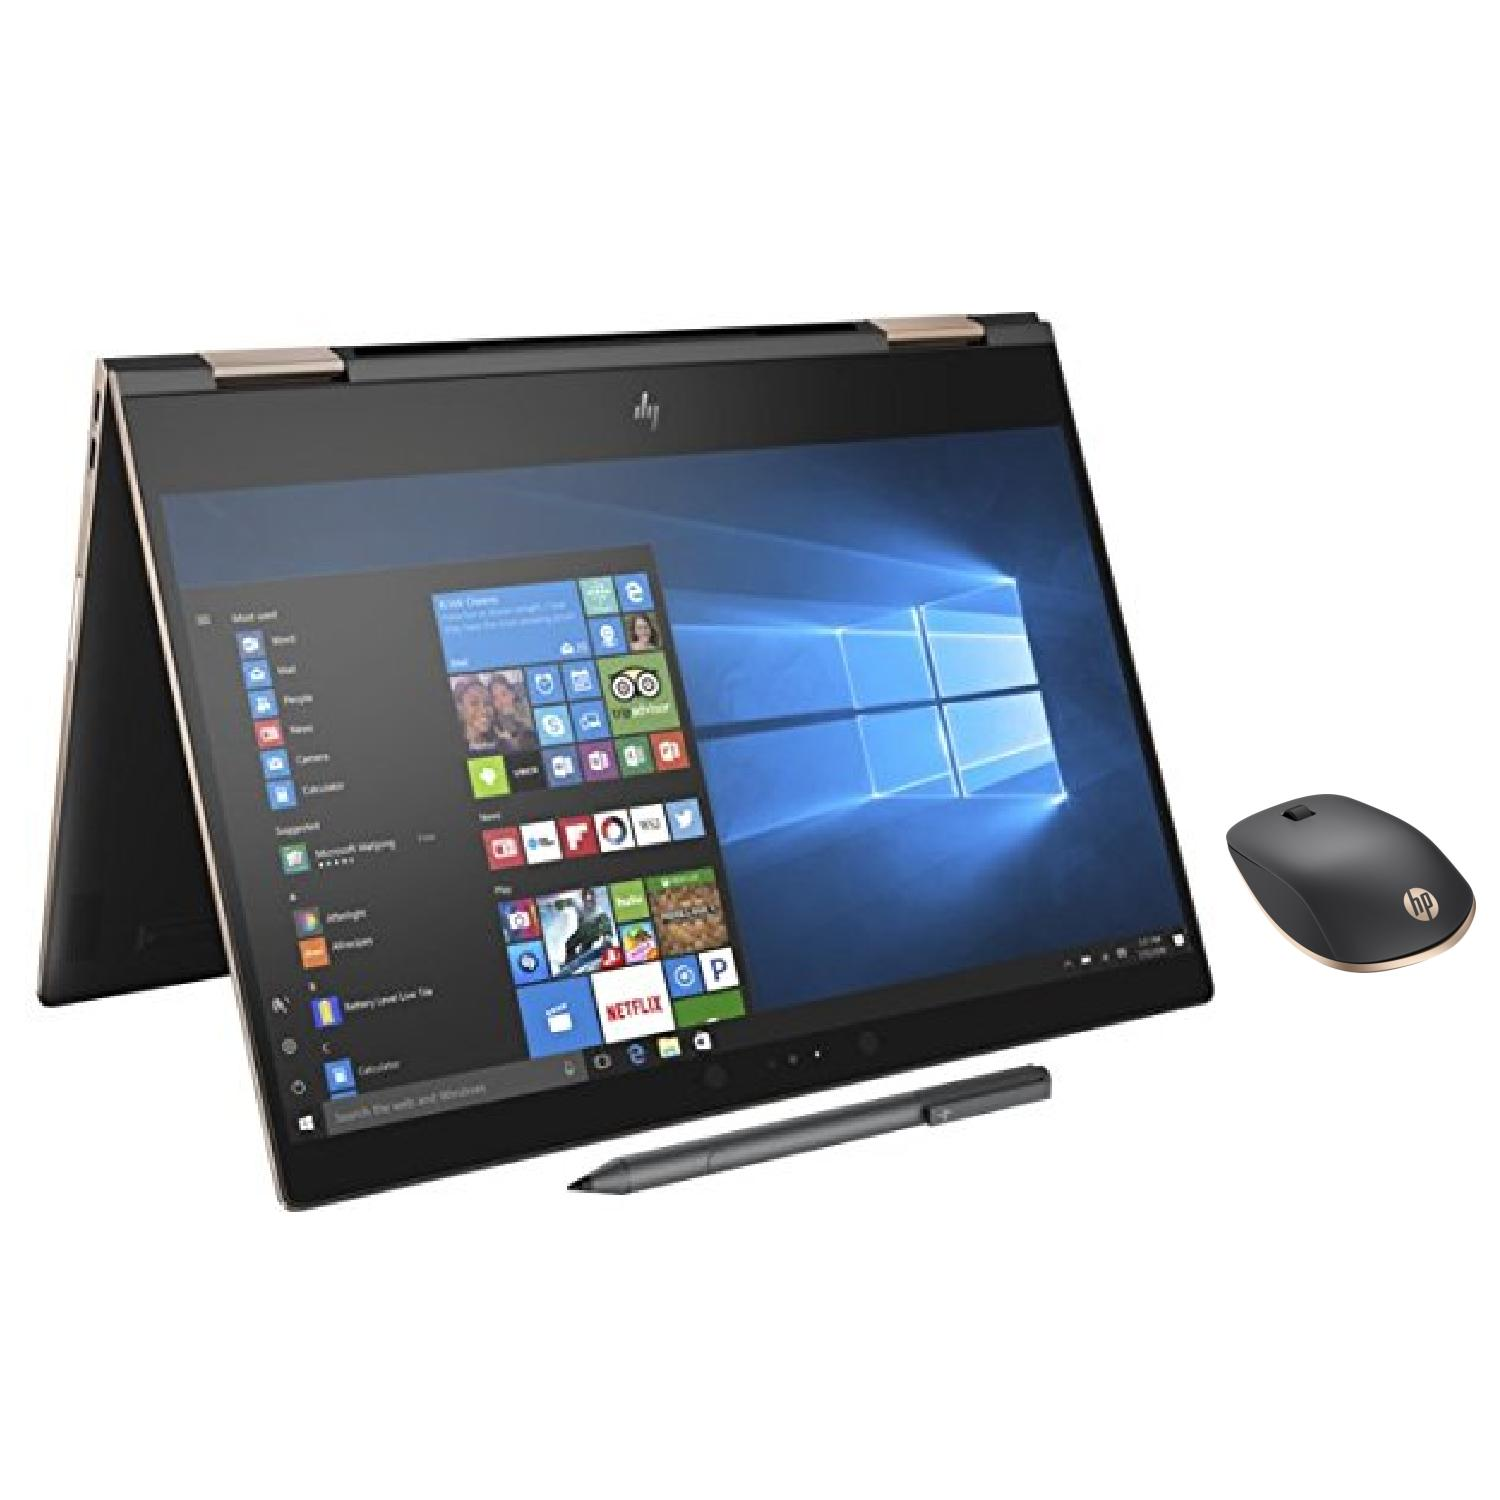 """HP Spectre x360-13t 2-in-1 Convertible Laptop (8th Gen Intel i7, 16GB RAM, 2TB PCIe SSD, 13.3"""" FHD IPS micro-edge Touchscreen Corning Gorilla, Win 10 Home) Dark Ash with HP Z5000 Bluetooth Mouse"""